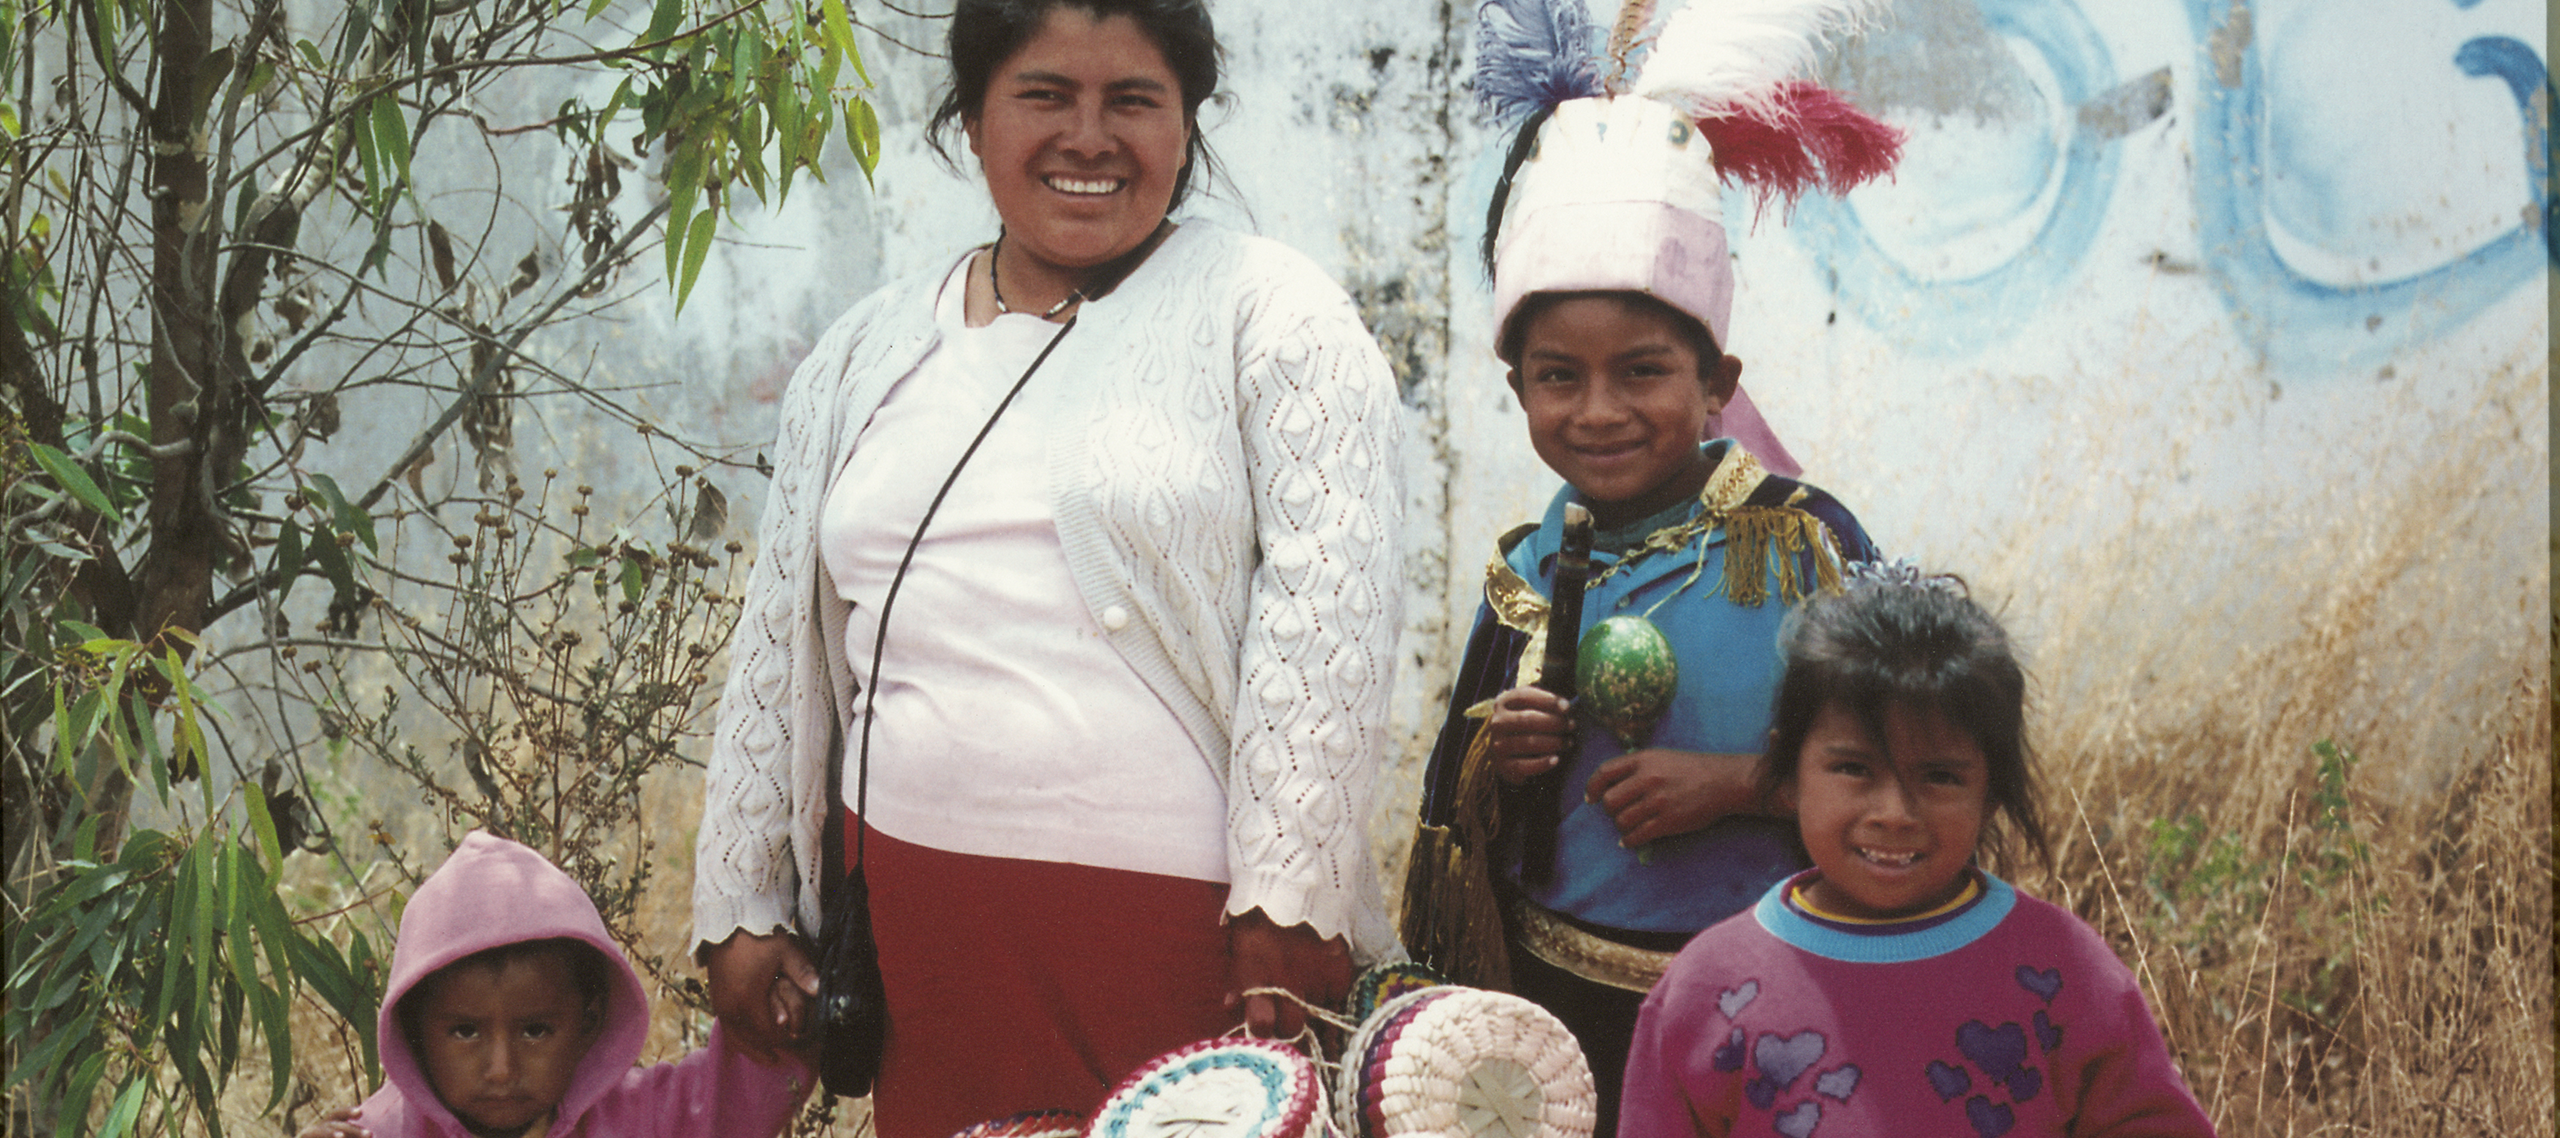 "An indigenous women and three children of varying ages stand smiling in front of the concrete wall of a building that has some white and blue graffiti on it, in high yellow grass that is mostly dead. The women and children carry beautiful woven baskets. Below them the word ""Oaxaca"" is printed in yellow type."